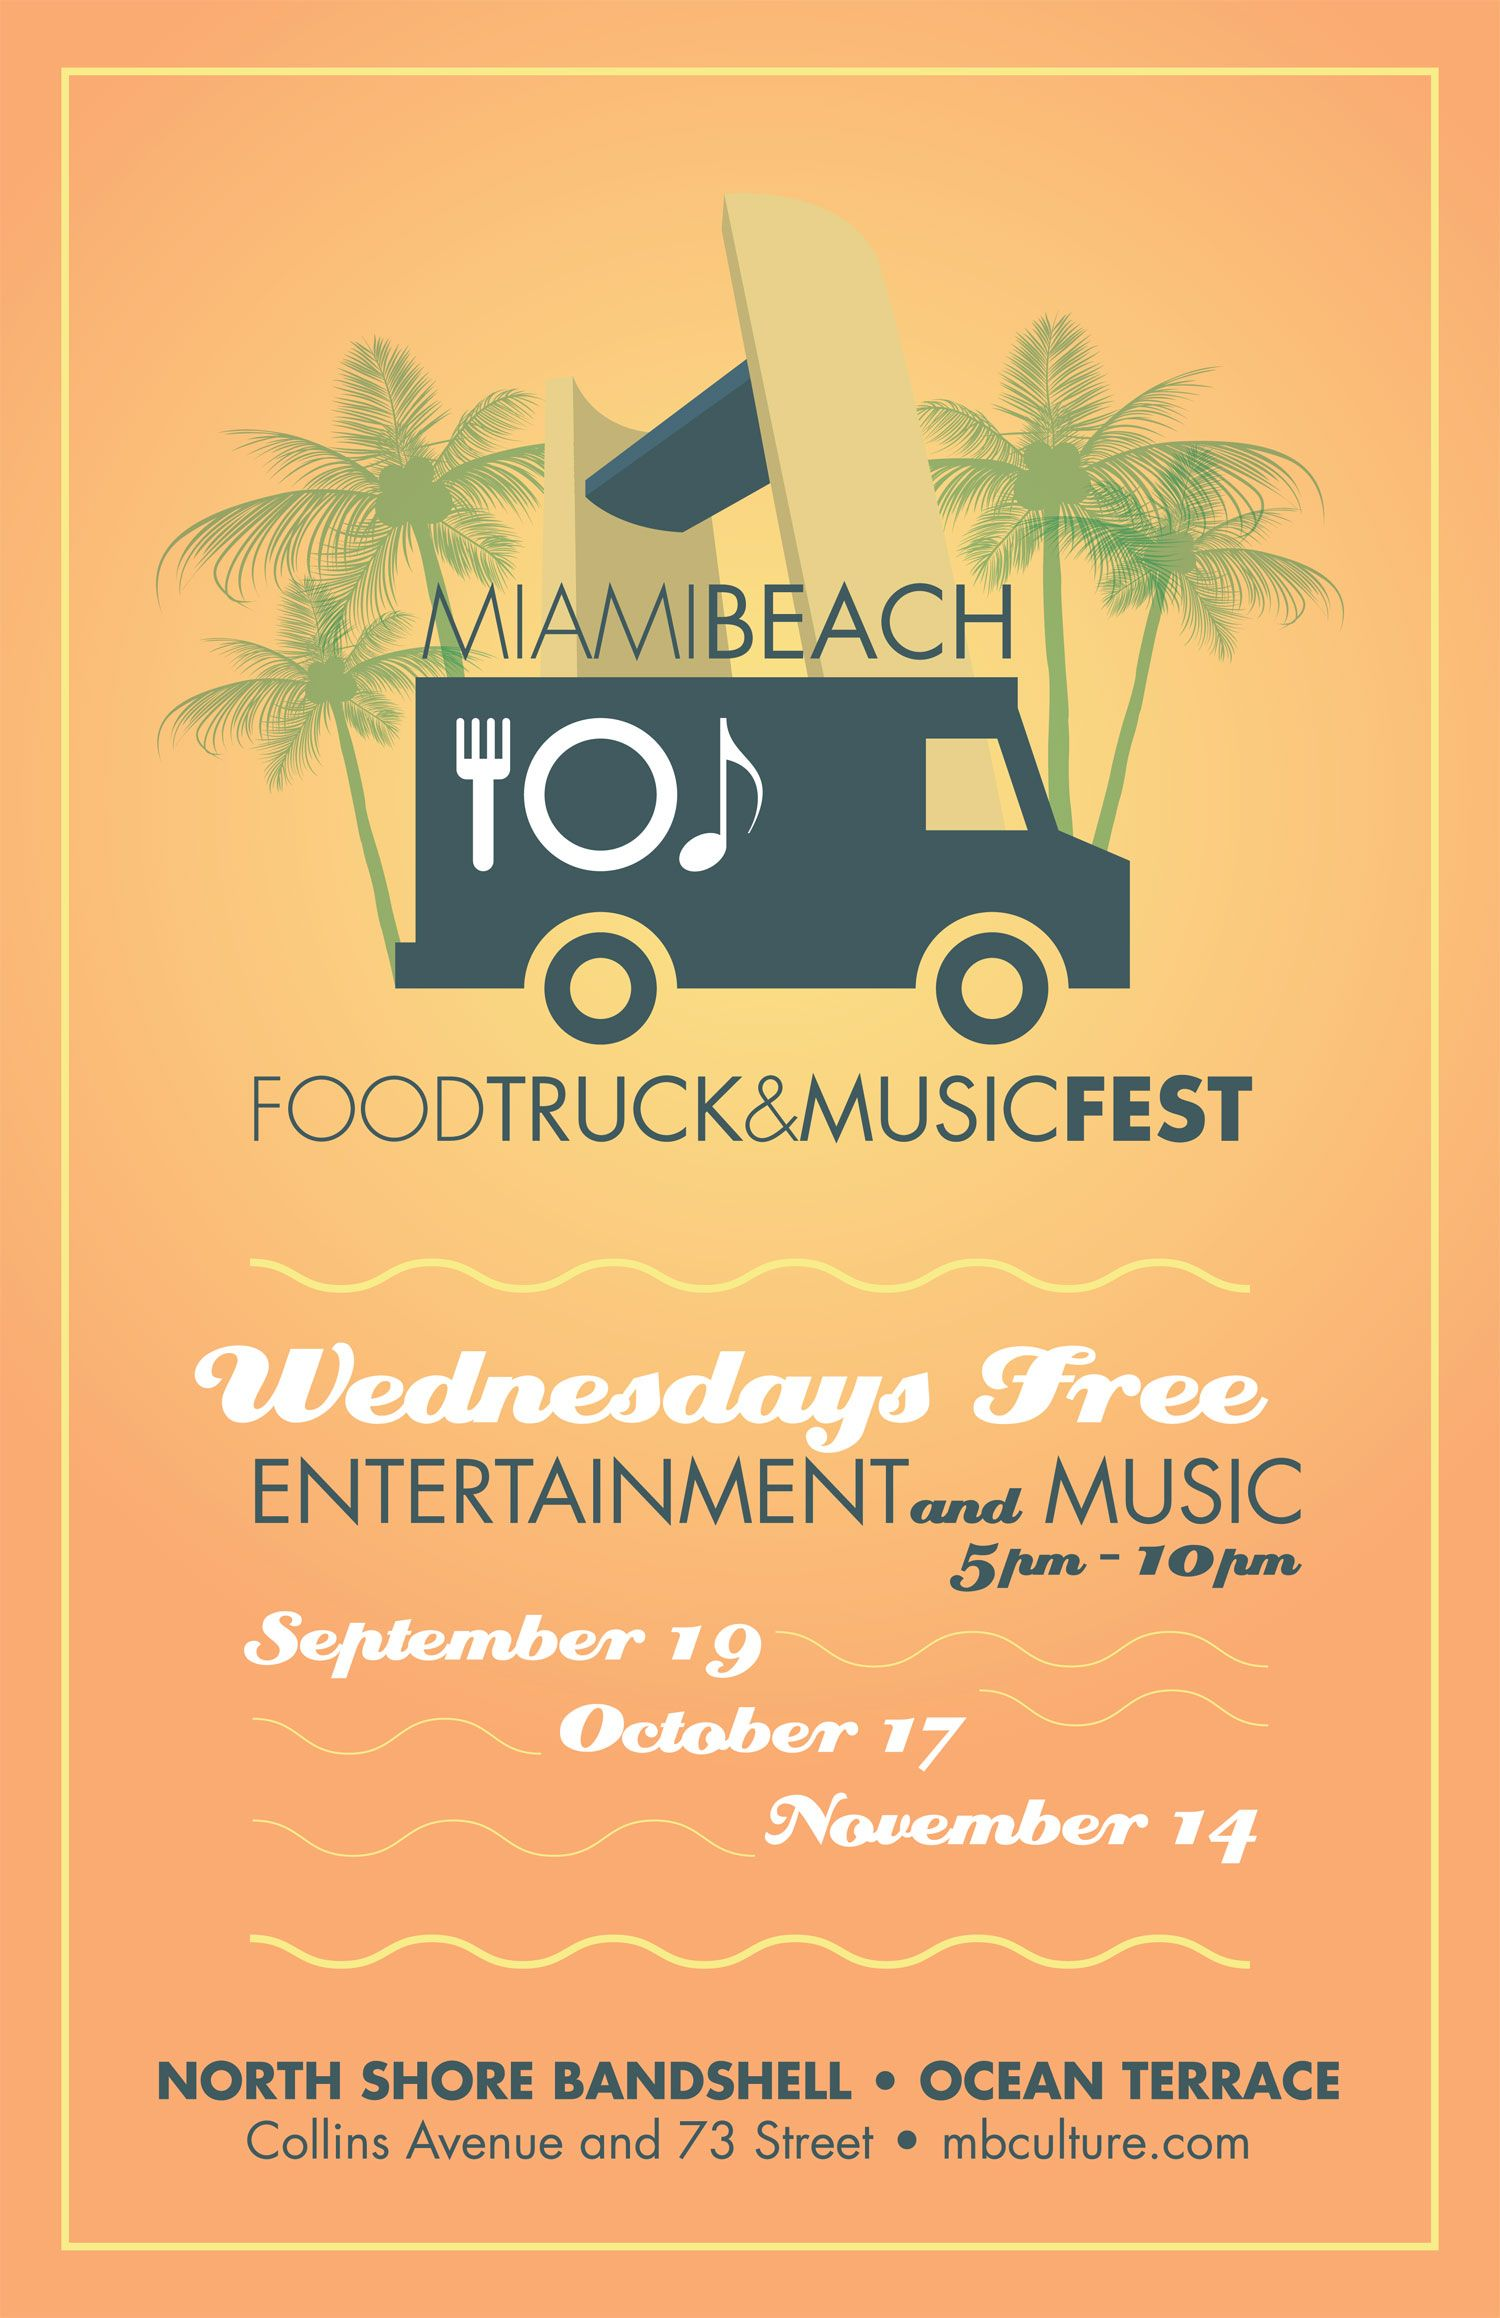 Food truck, Food truck events, Music fest